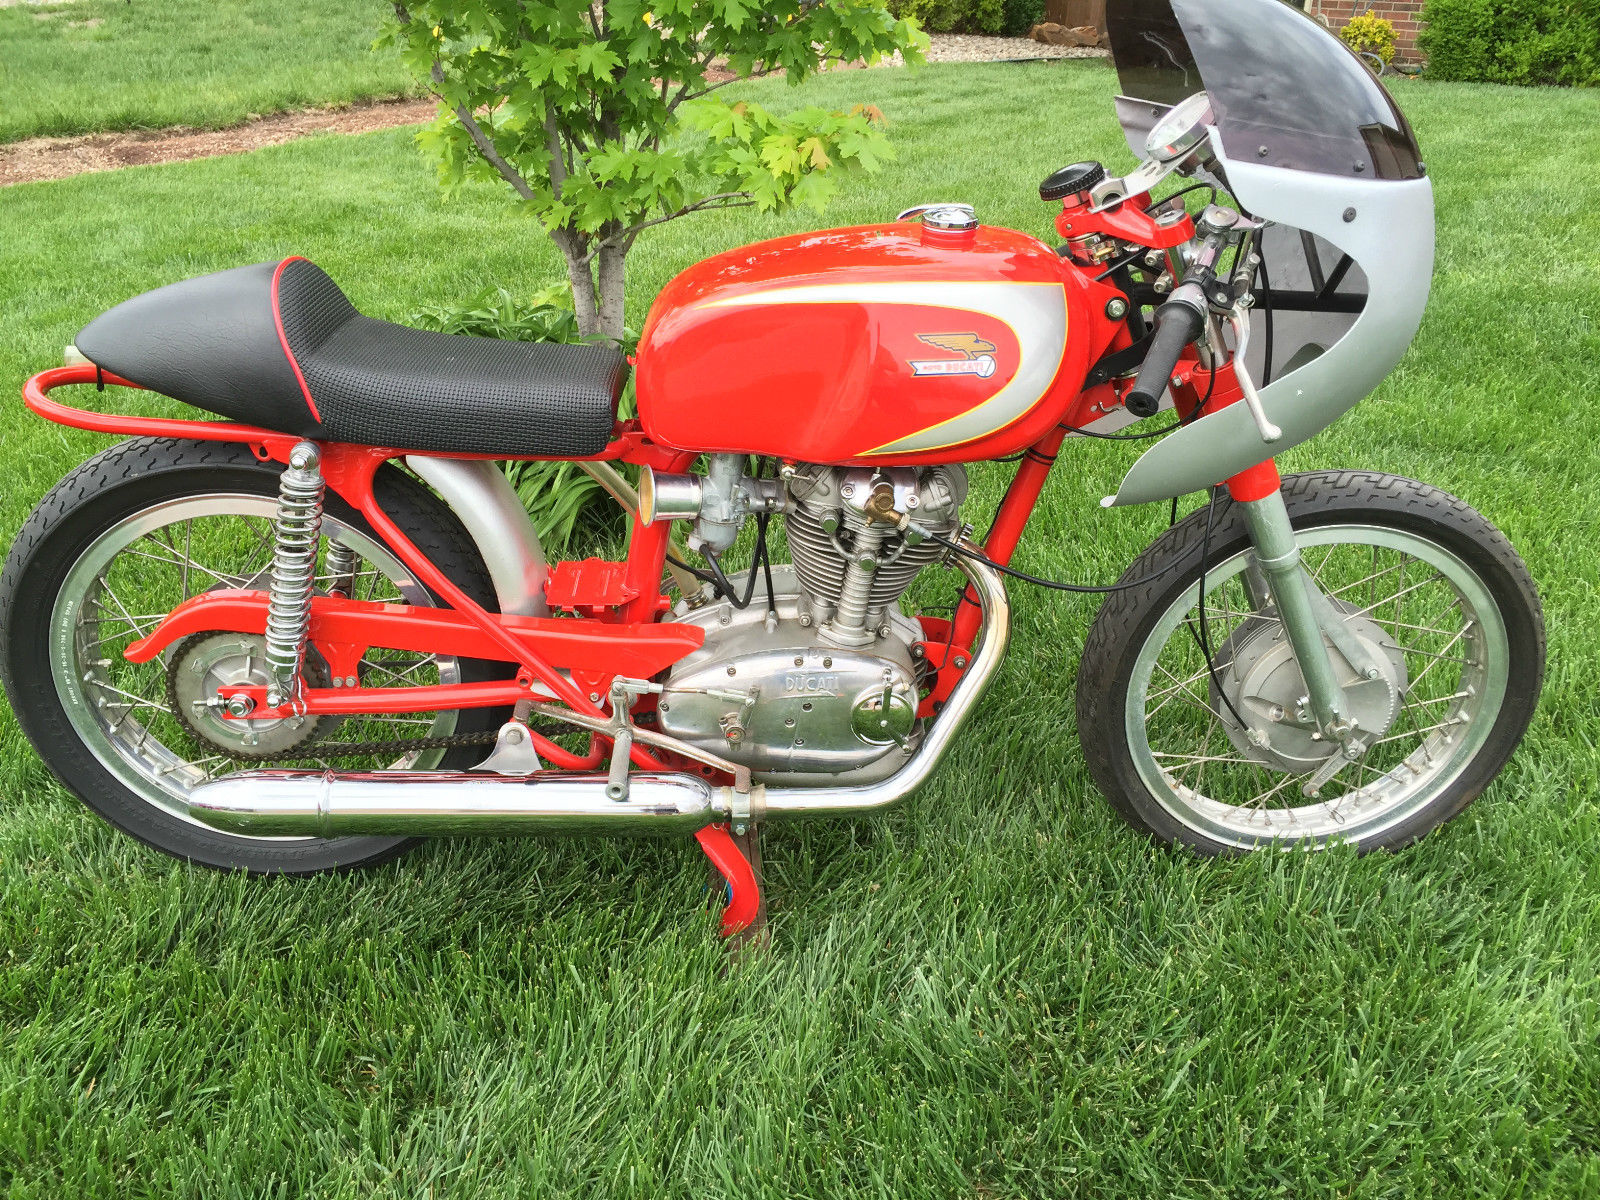 Ducati 250 Mark 3 1972 images #10237